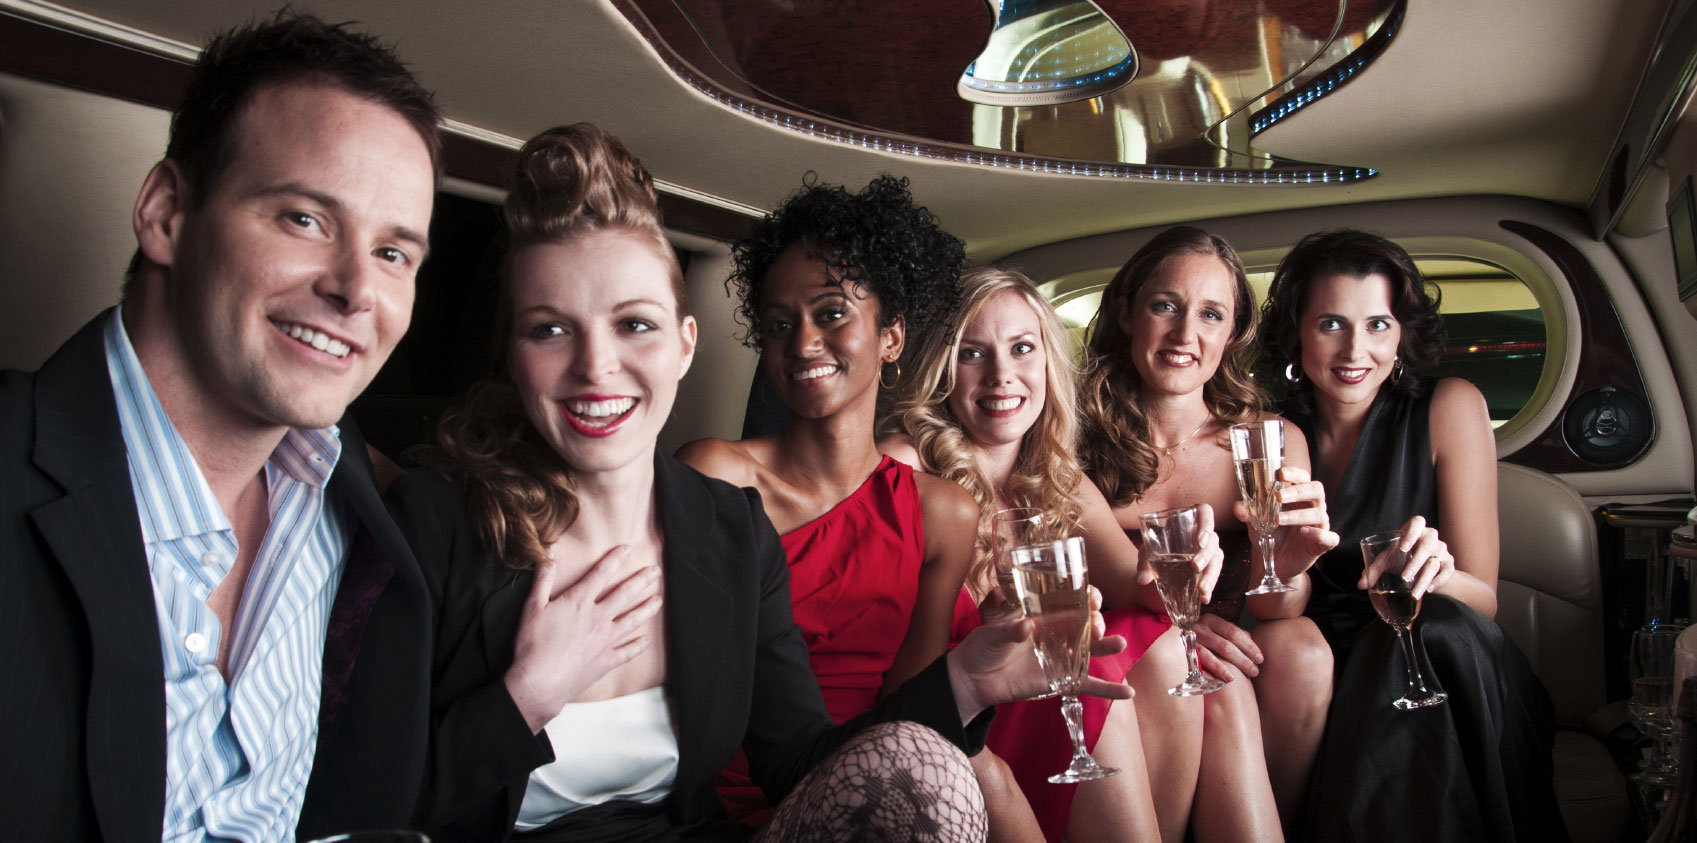 Wedding Special Occasions special occasions atlanta limo airport transport and car marietta smyrna luxury limousine rental home about us occasions